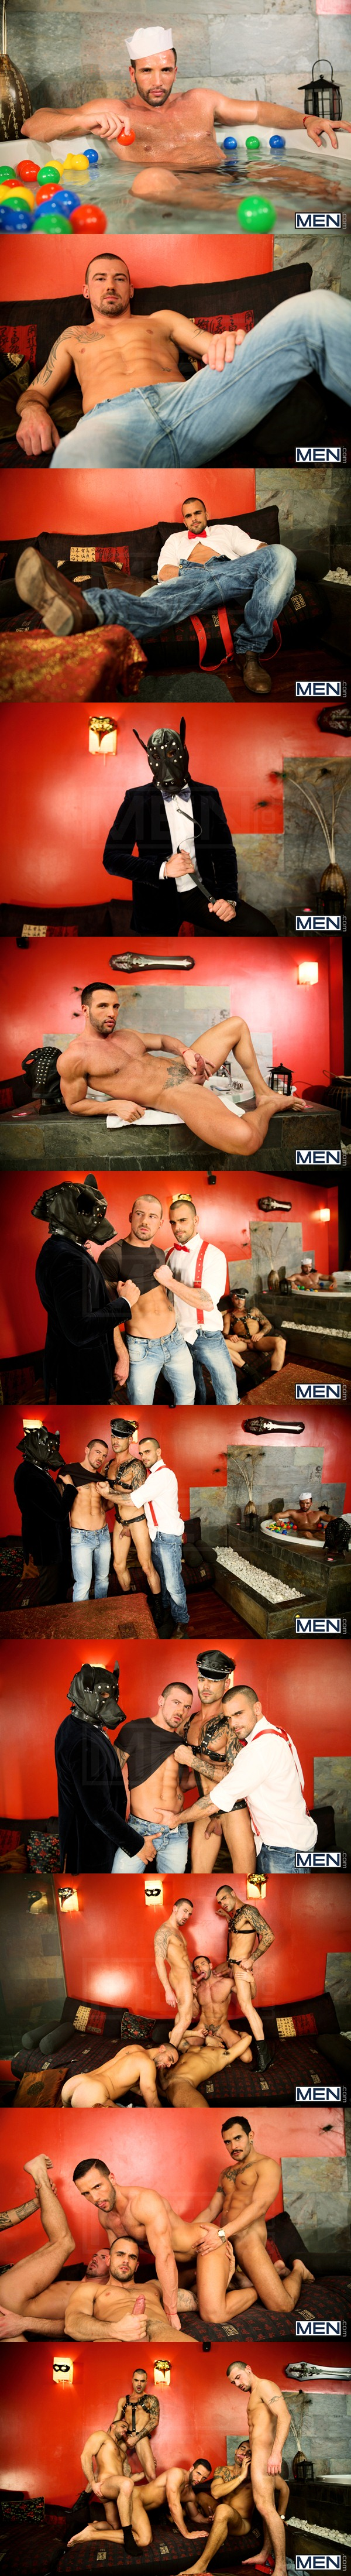 Damien Crosse, Issac Jones, Lucio Saints, Marco Sessions and Donato Reyes hot orgy of kissing, sucking, rimming and fucking in Justified at Jizzorgy 01